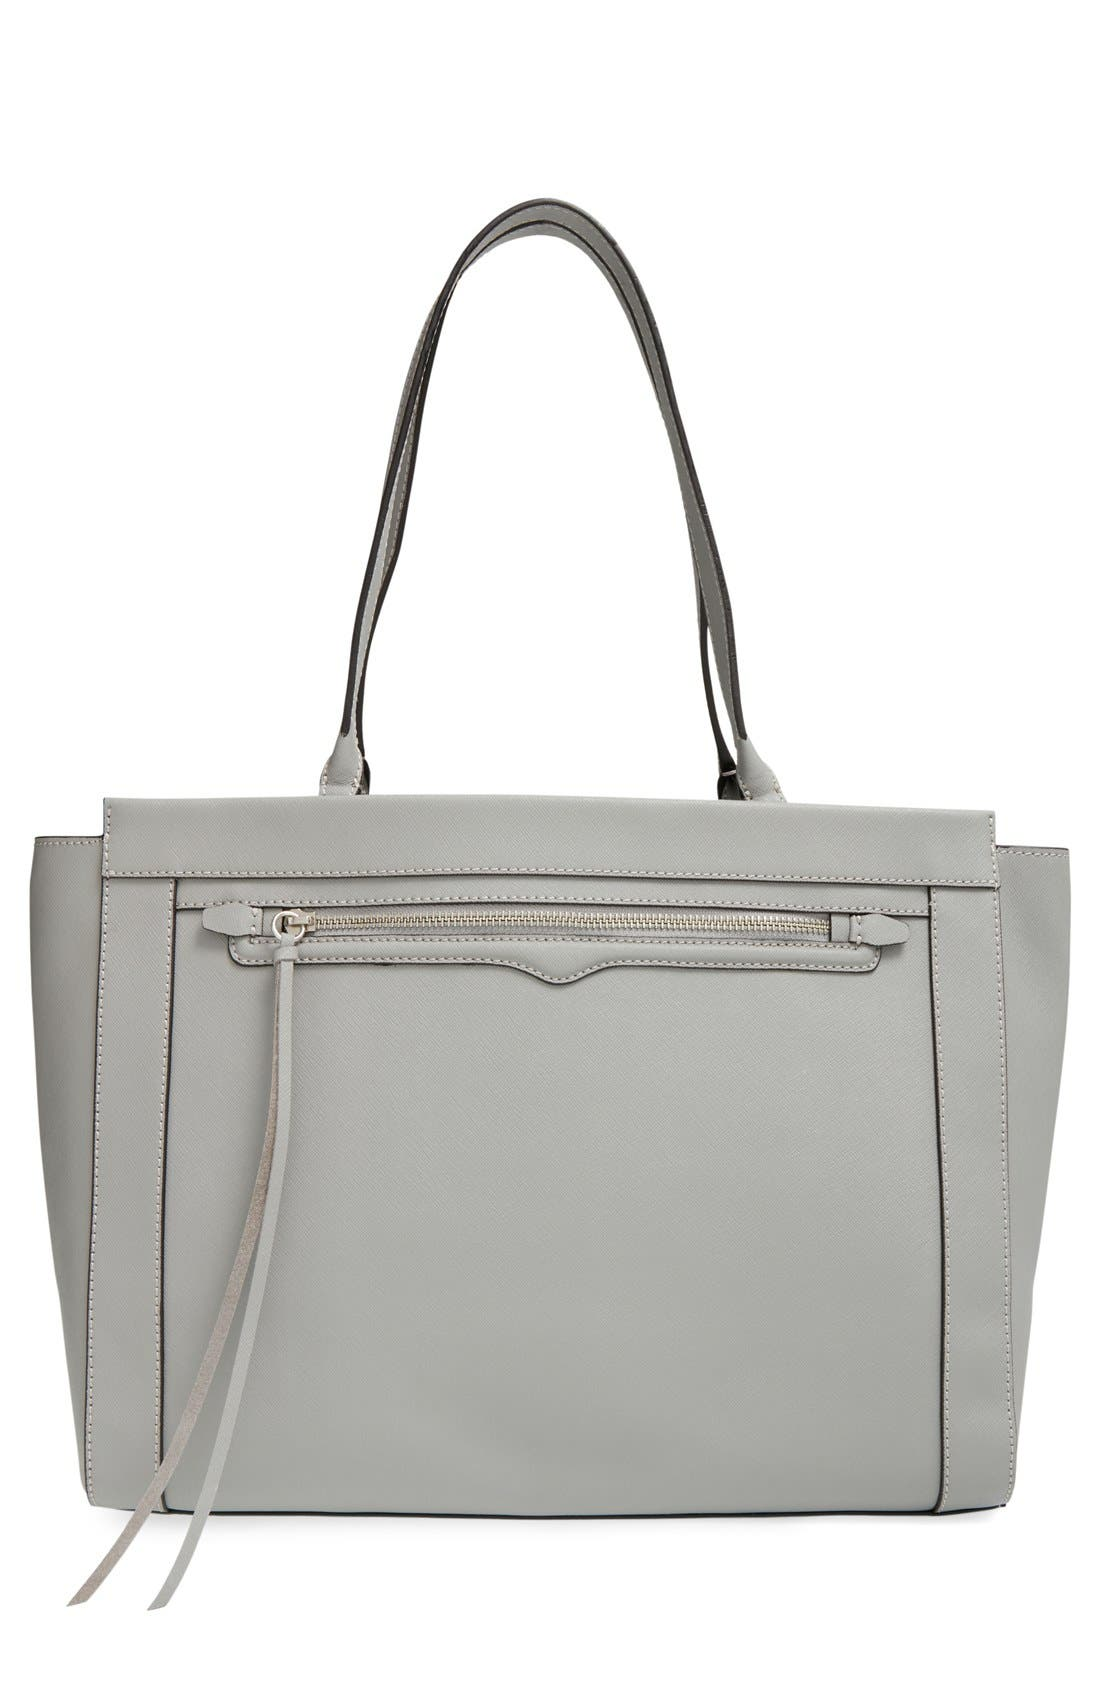 'Monroe' Tote,                         Main,                         color, Charcoal/ Silvrt